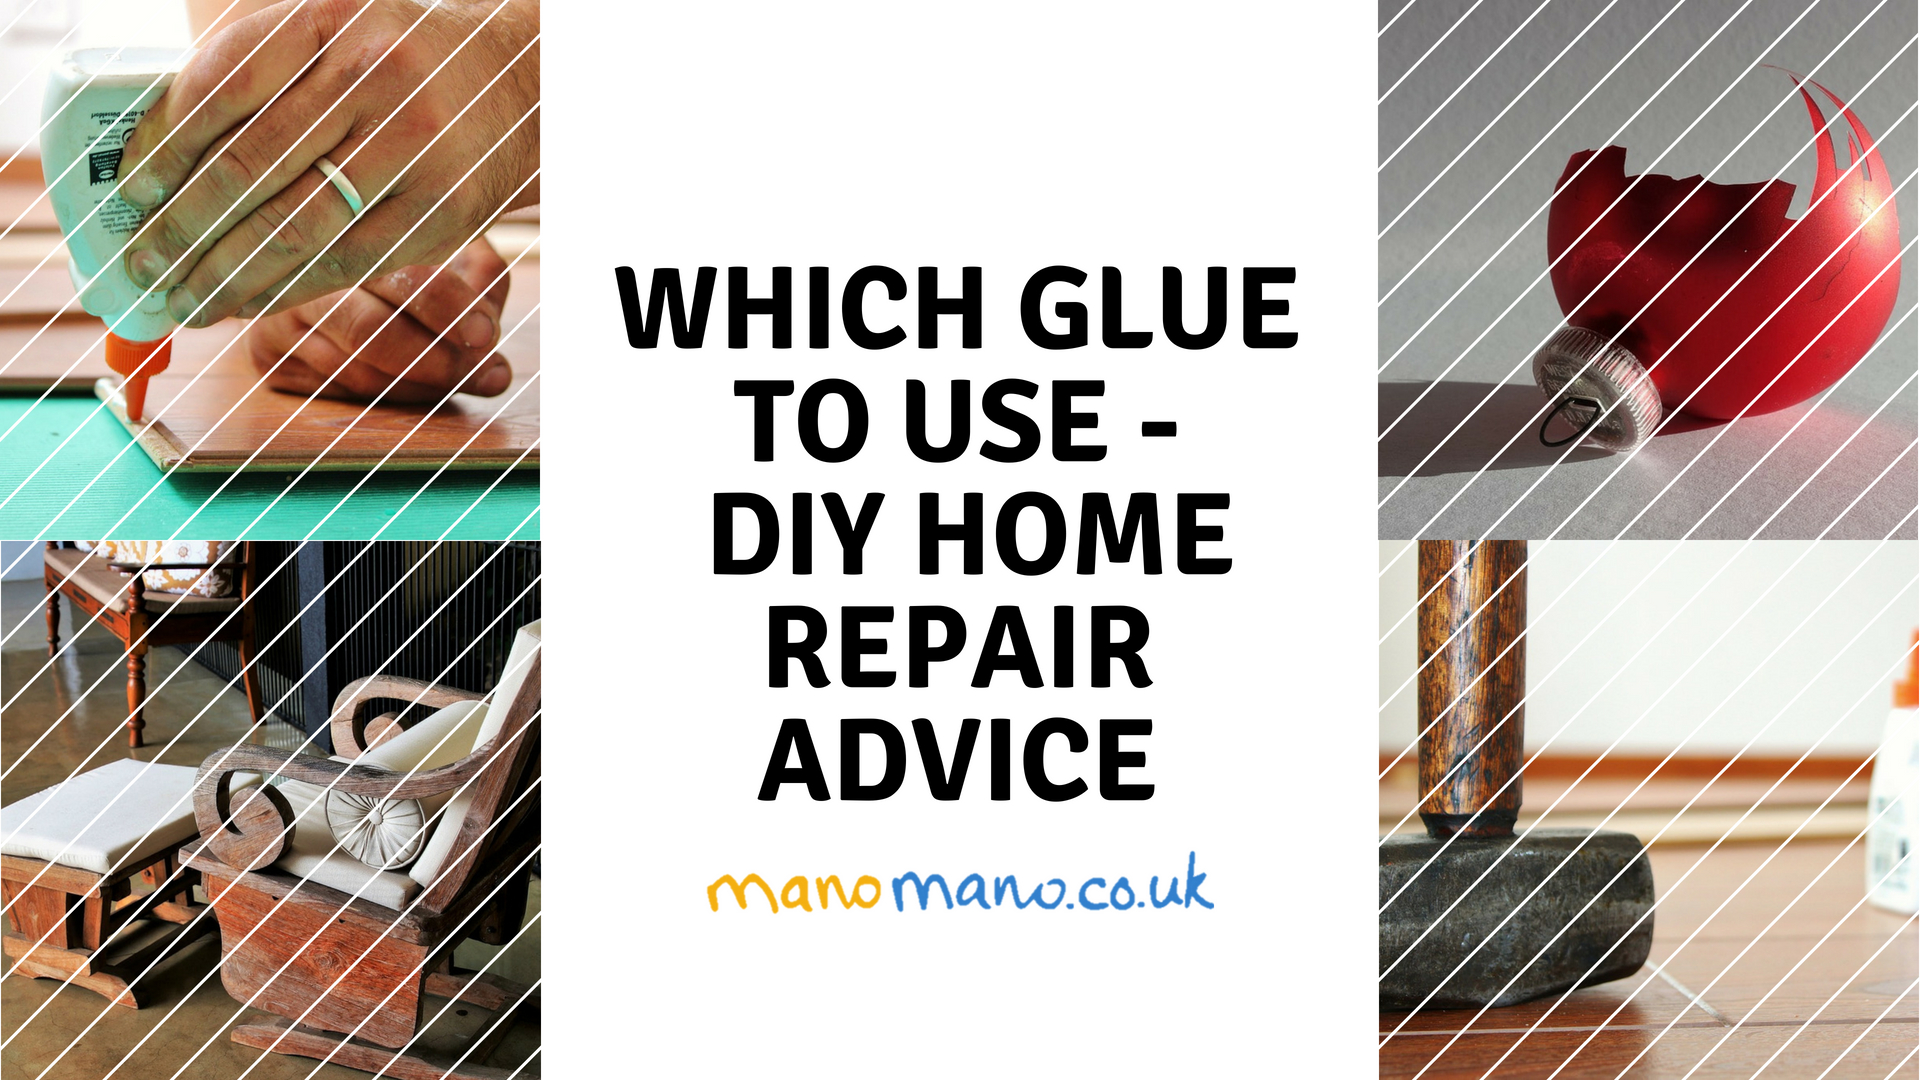 What Glue To Use For Diy Home Repairs The Handy Mano